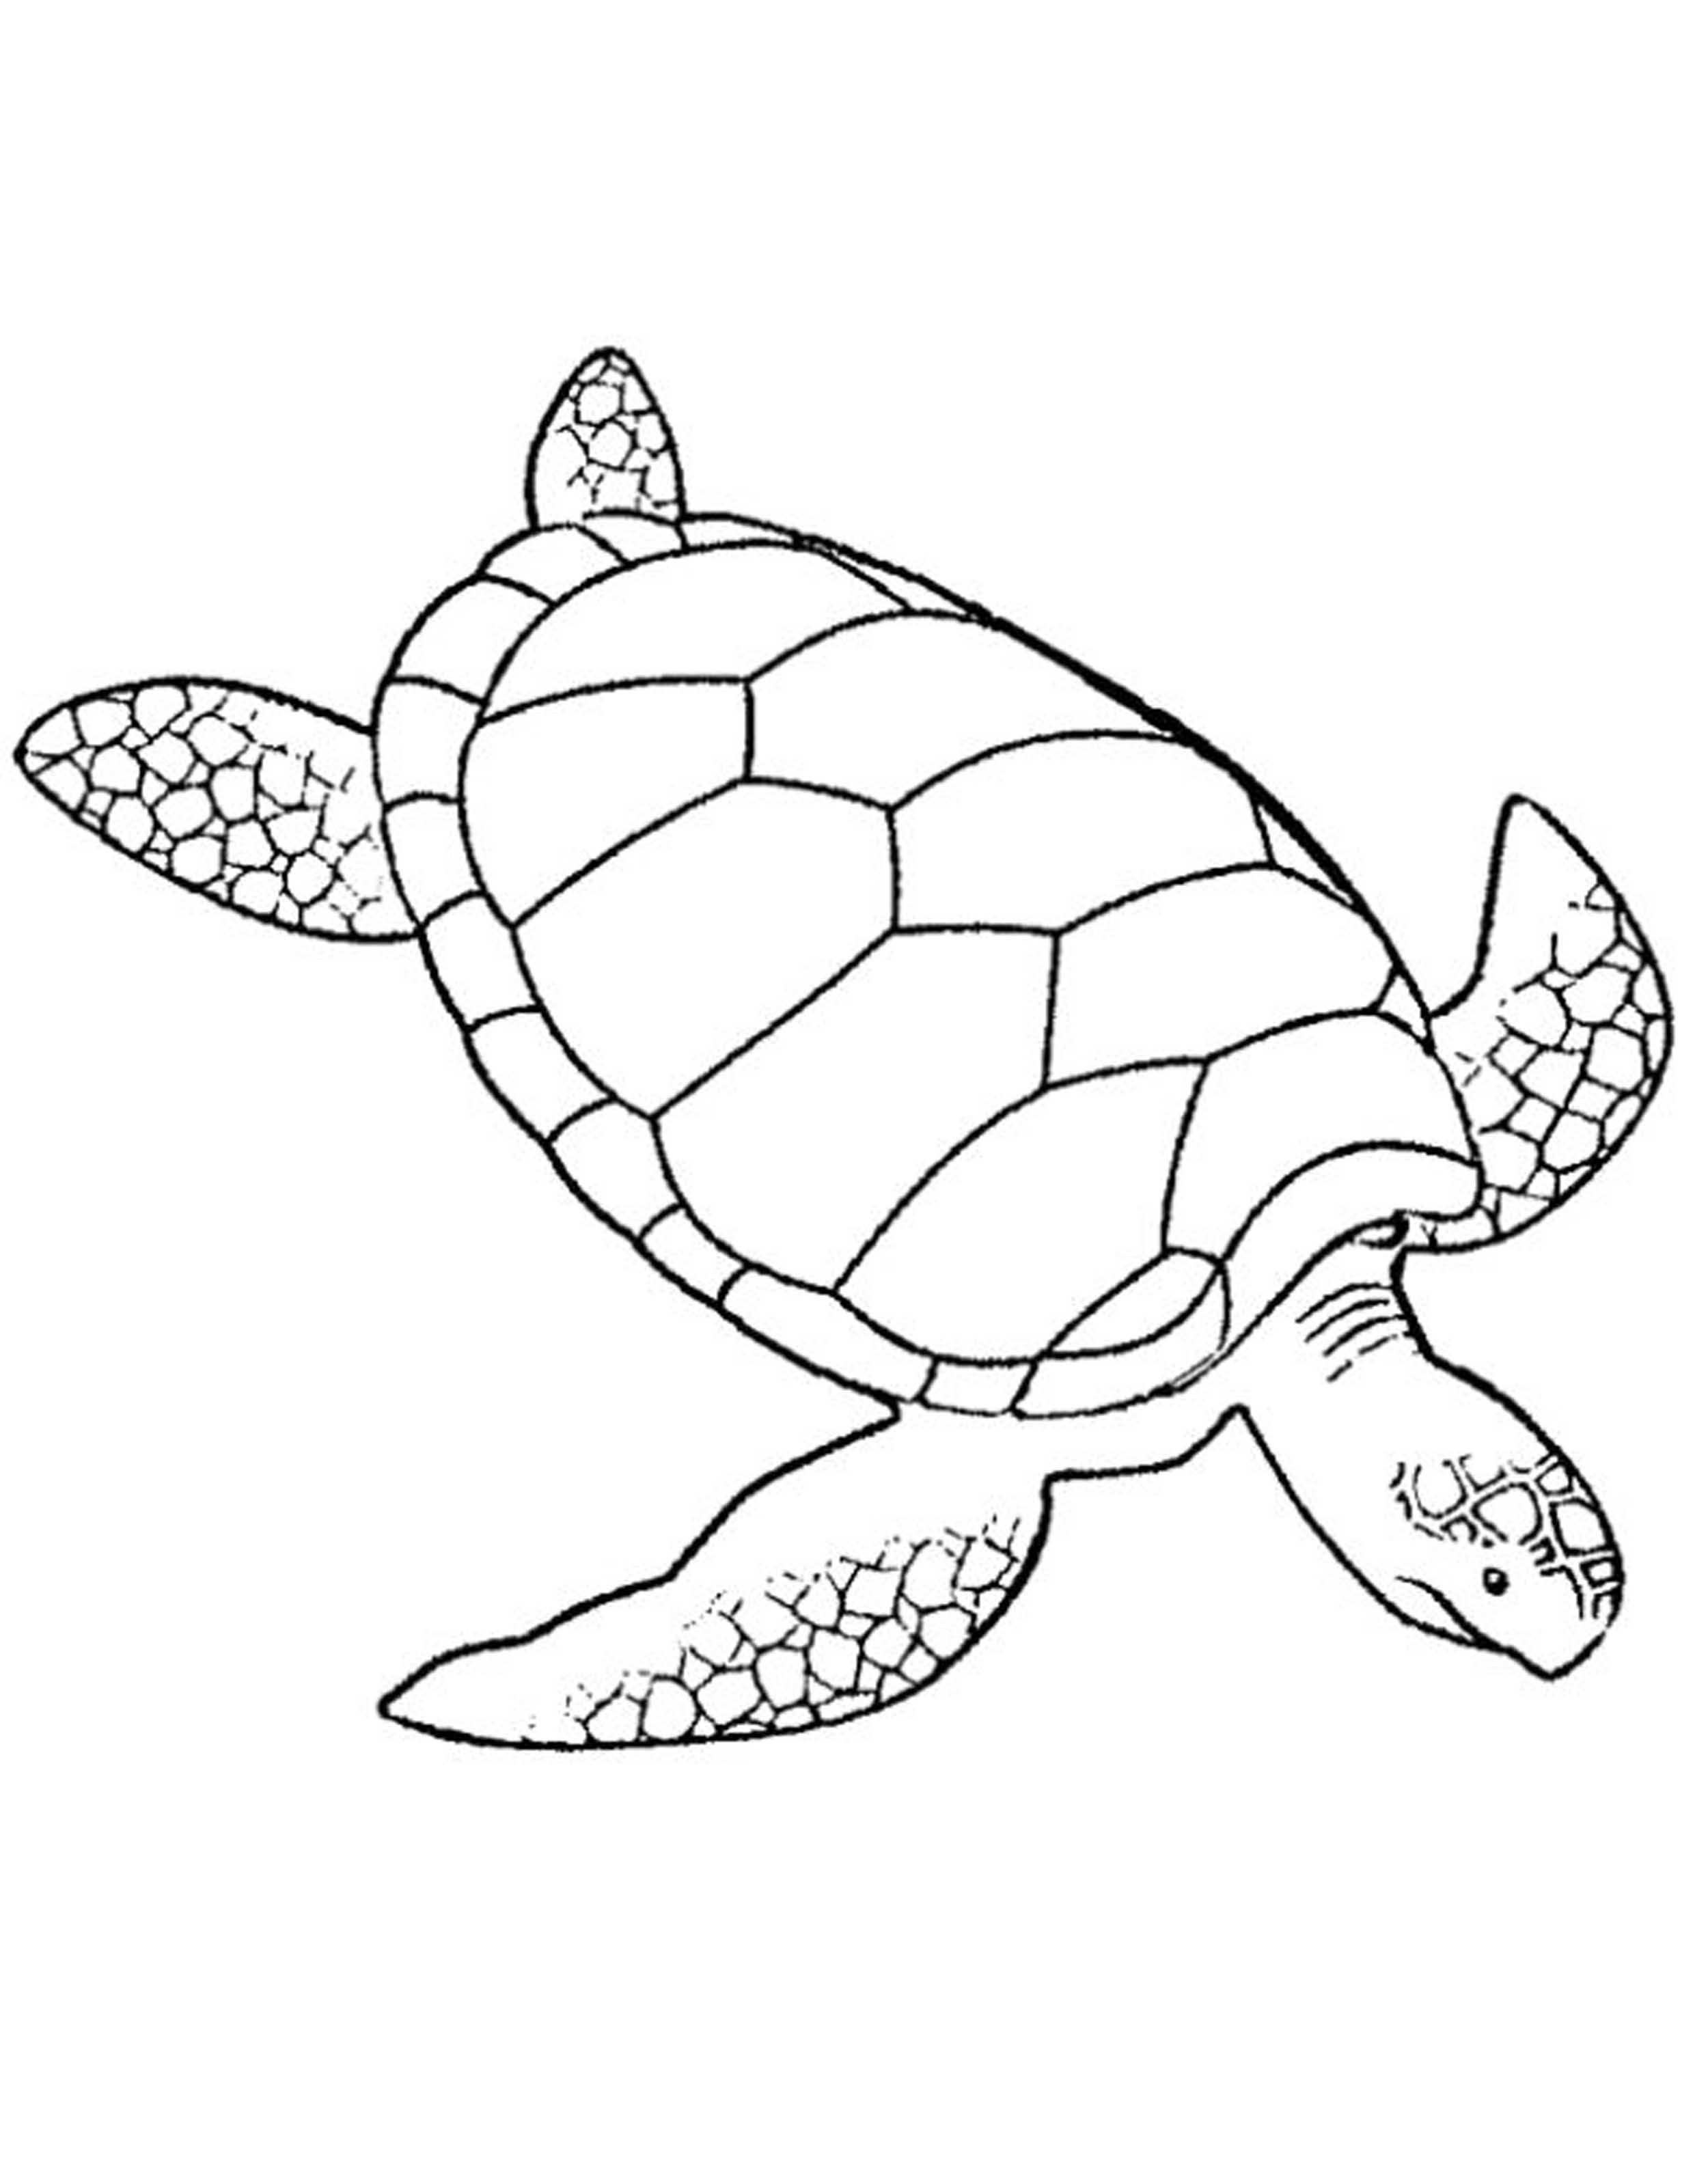 turtle coloring pictures coloring pages turtles free printable coloring pages pictures coloring turtle